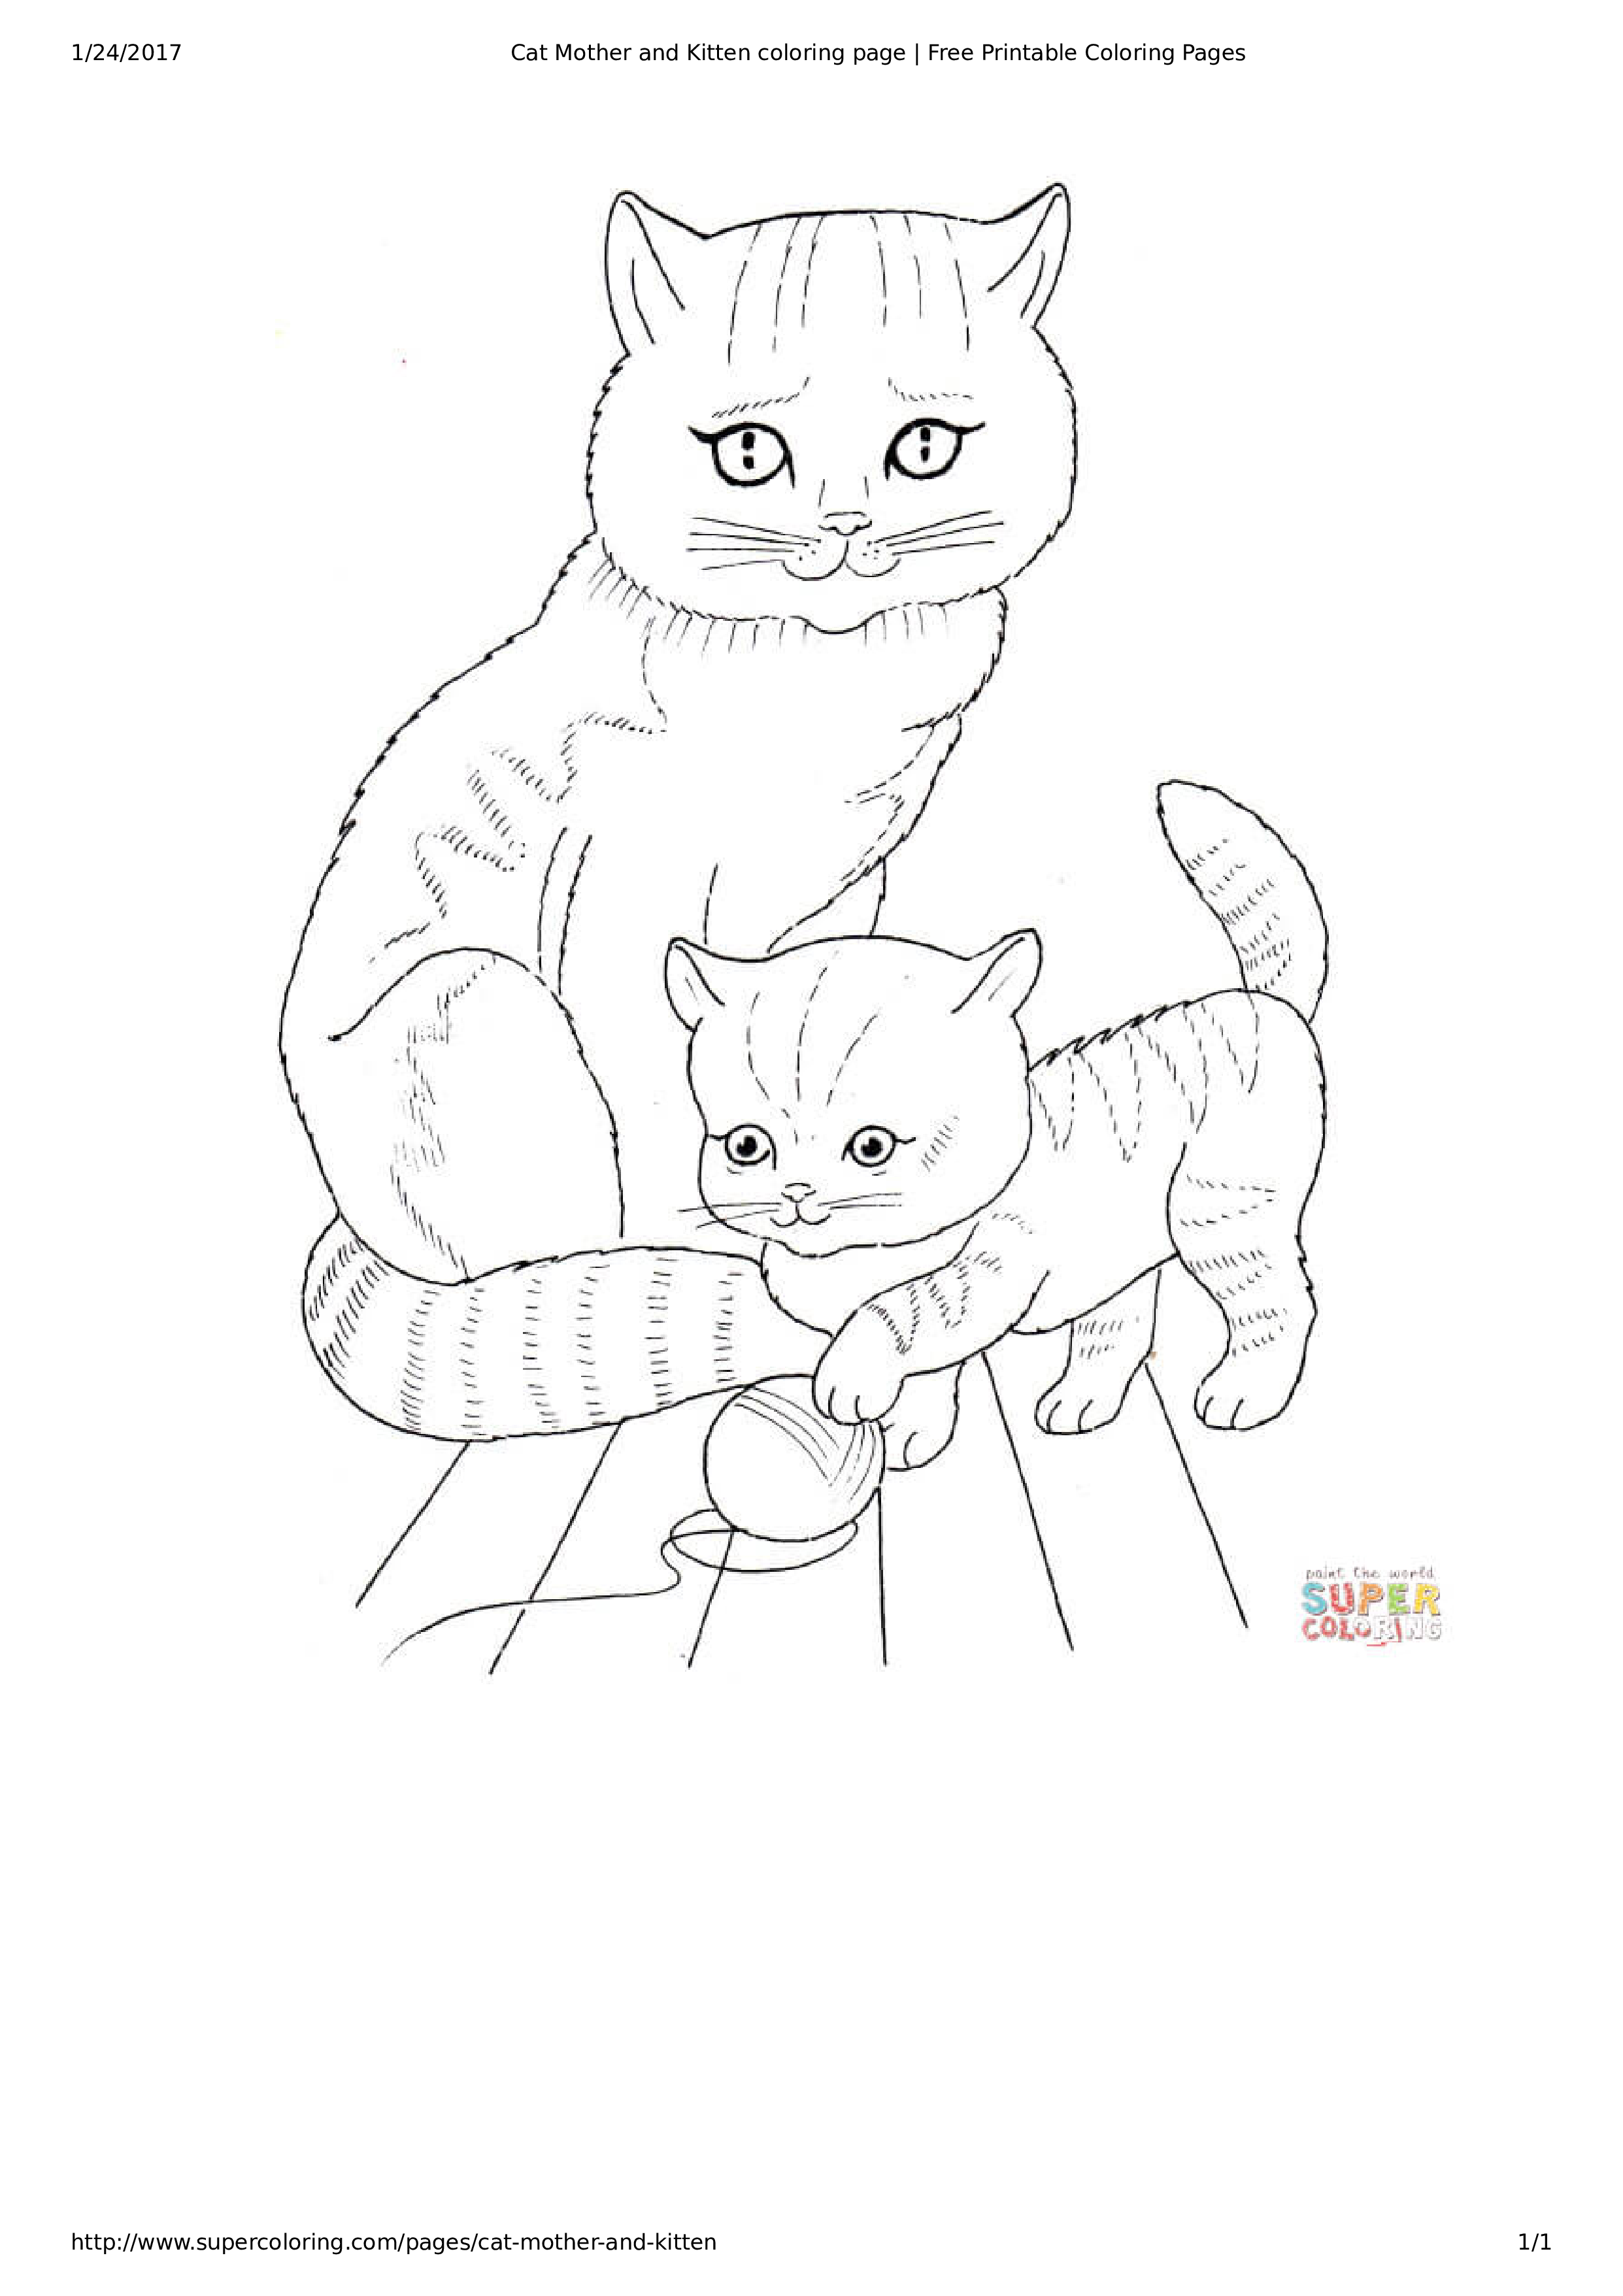 Free Cat And Kitten Coloring Page Templates At